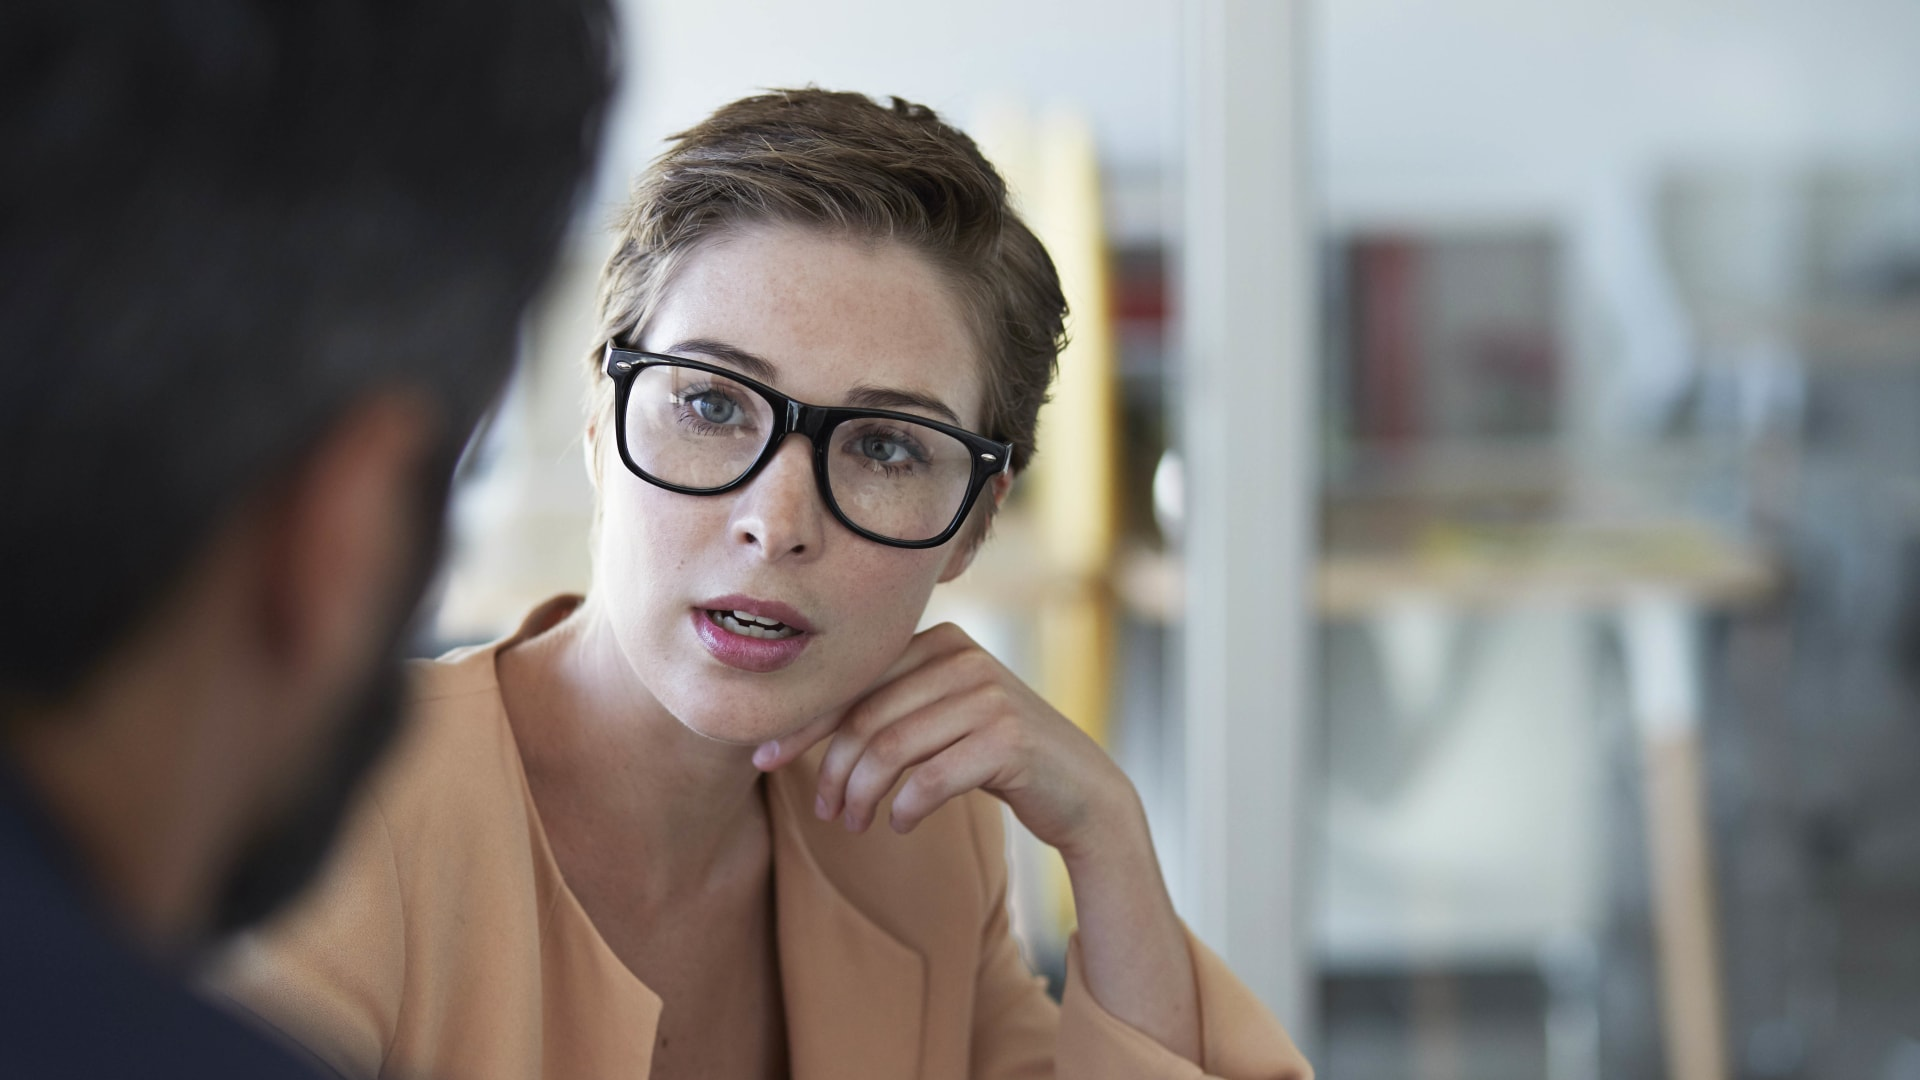 The 1 Thing to Remember Before You Start a Difficult Conversation